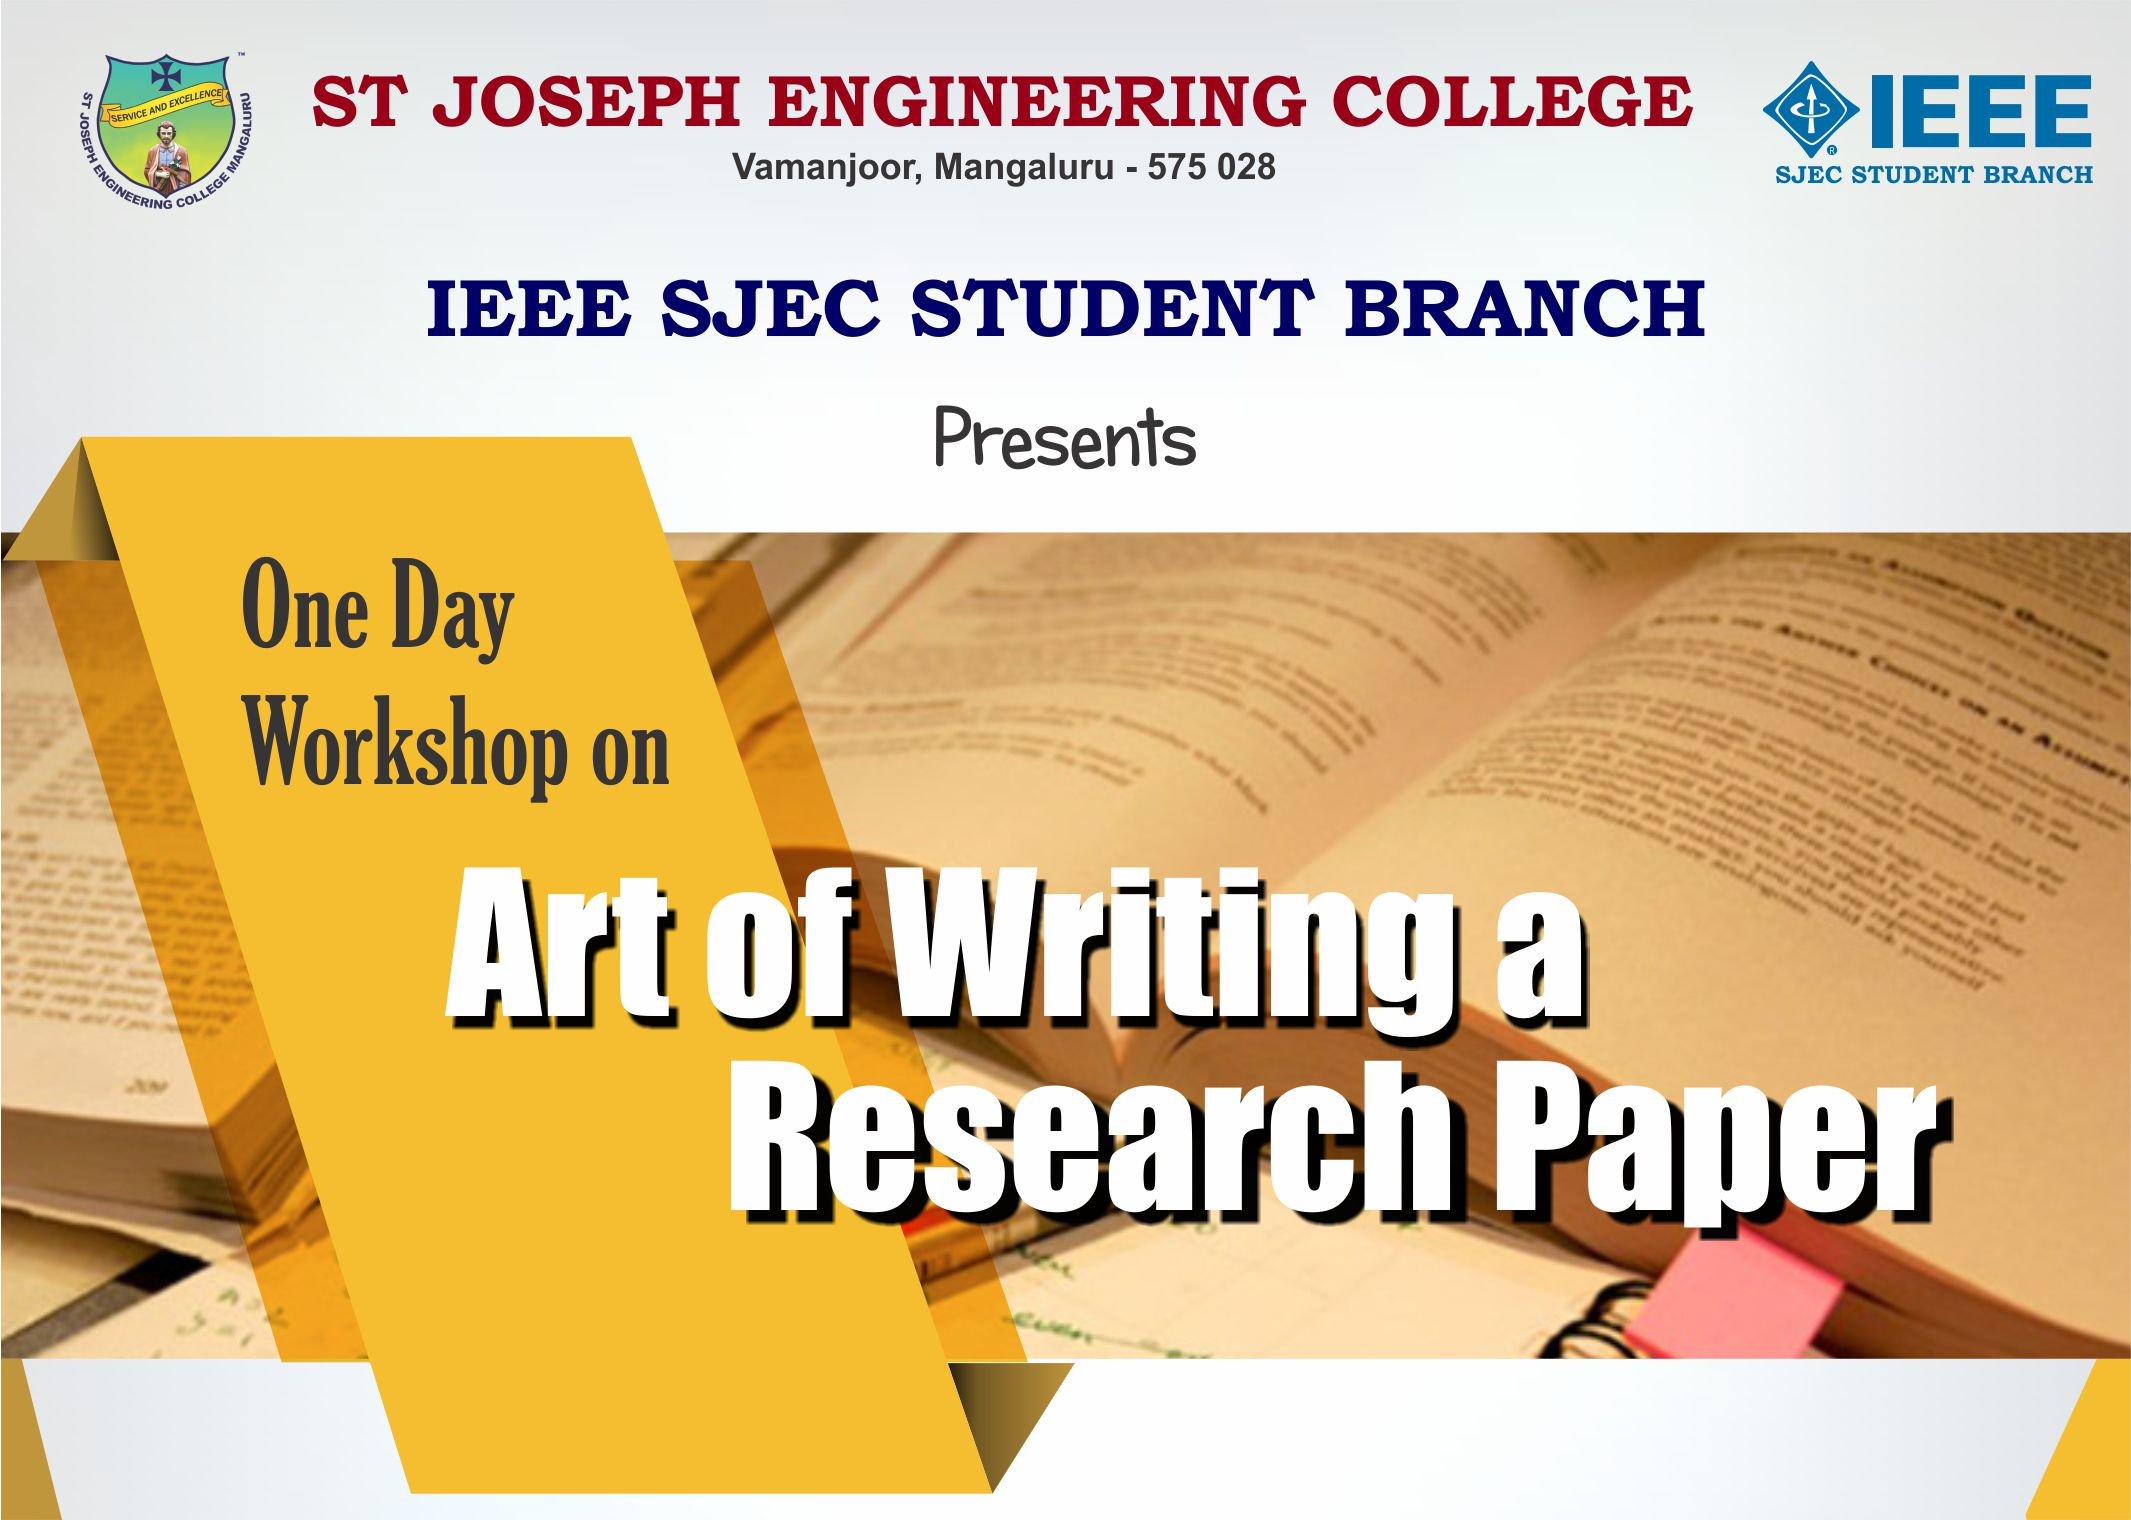 008 Workshop Banner Research Paper Writing Phenomenal The Papers A Complete Guide 15th Edition Pdf Abstract Ppt Biomedical Full